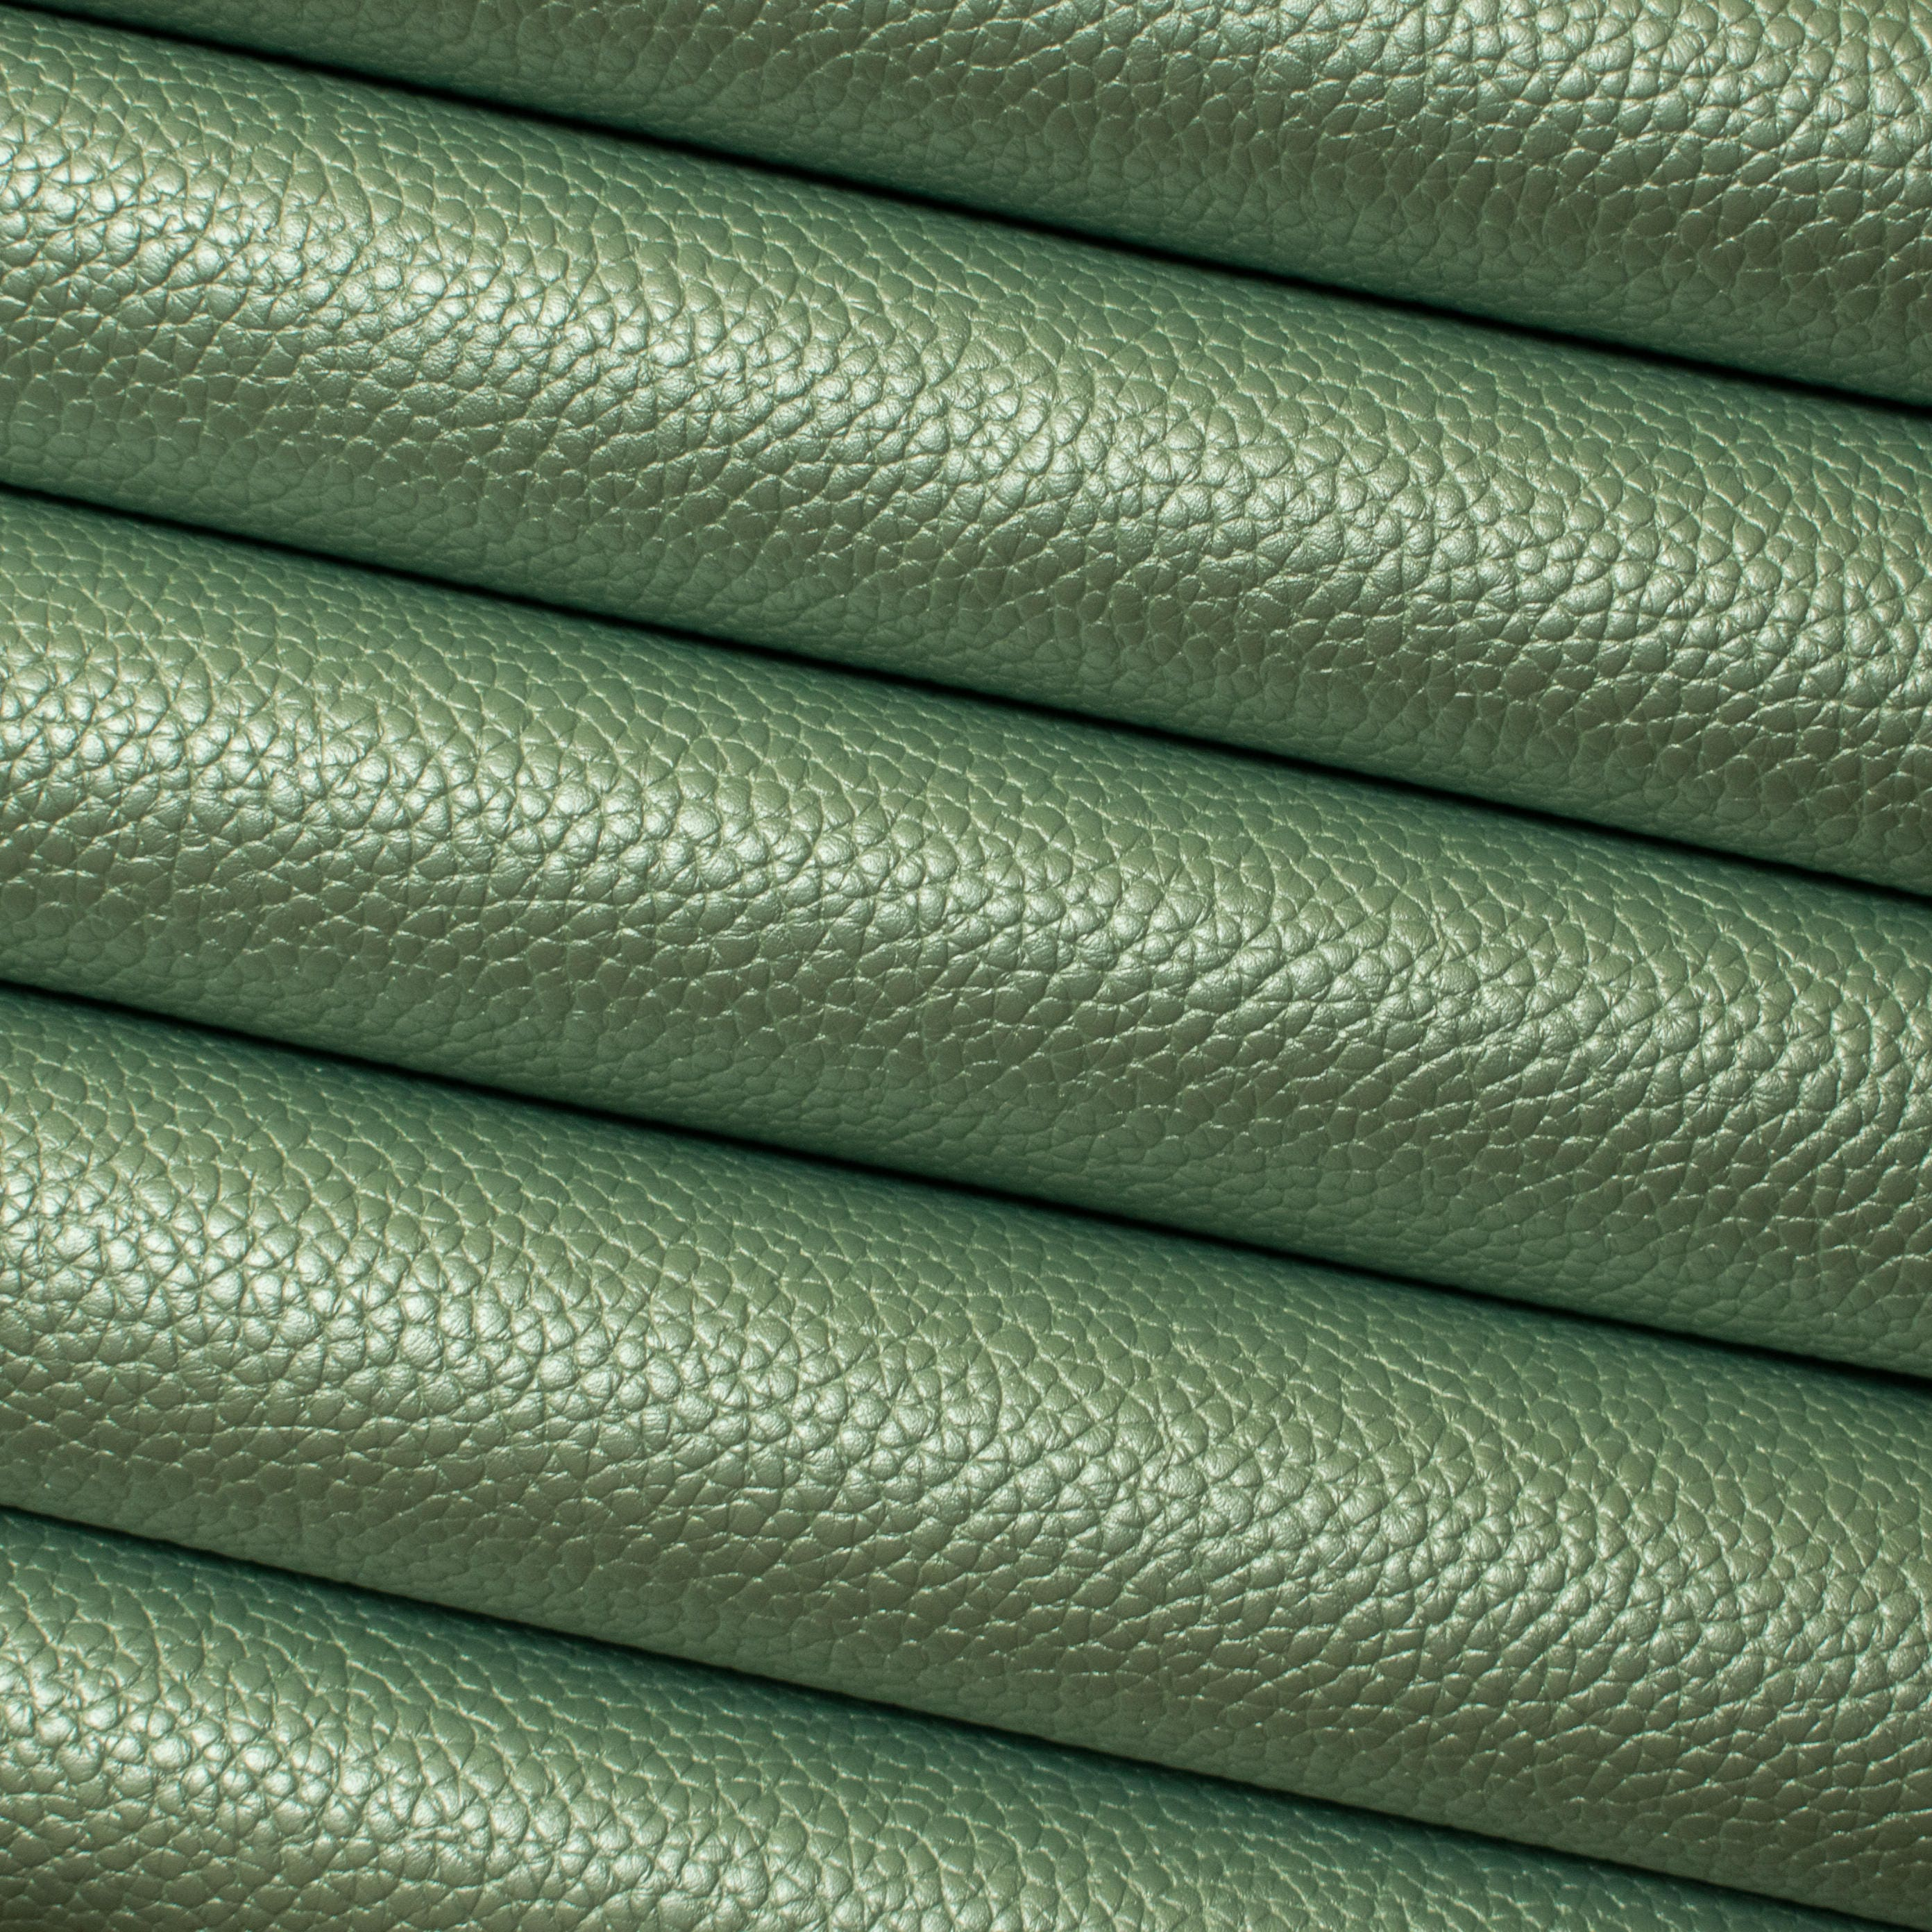 Pearl Mint Textured Metallic Leatherette Fabric Sheet from